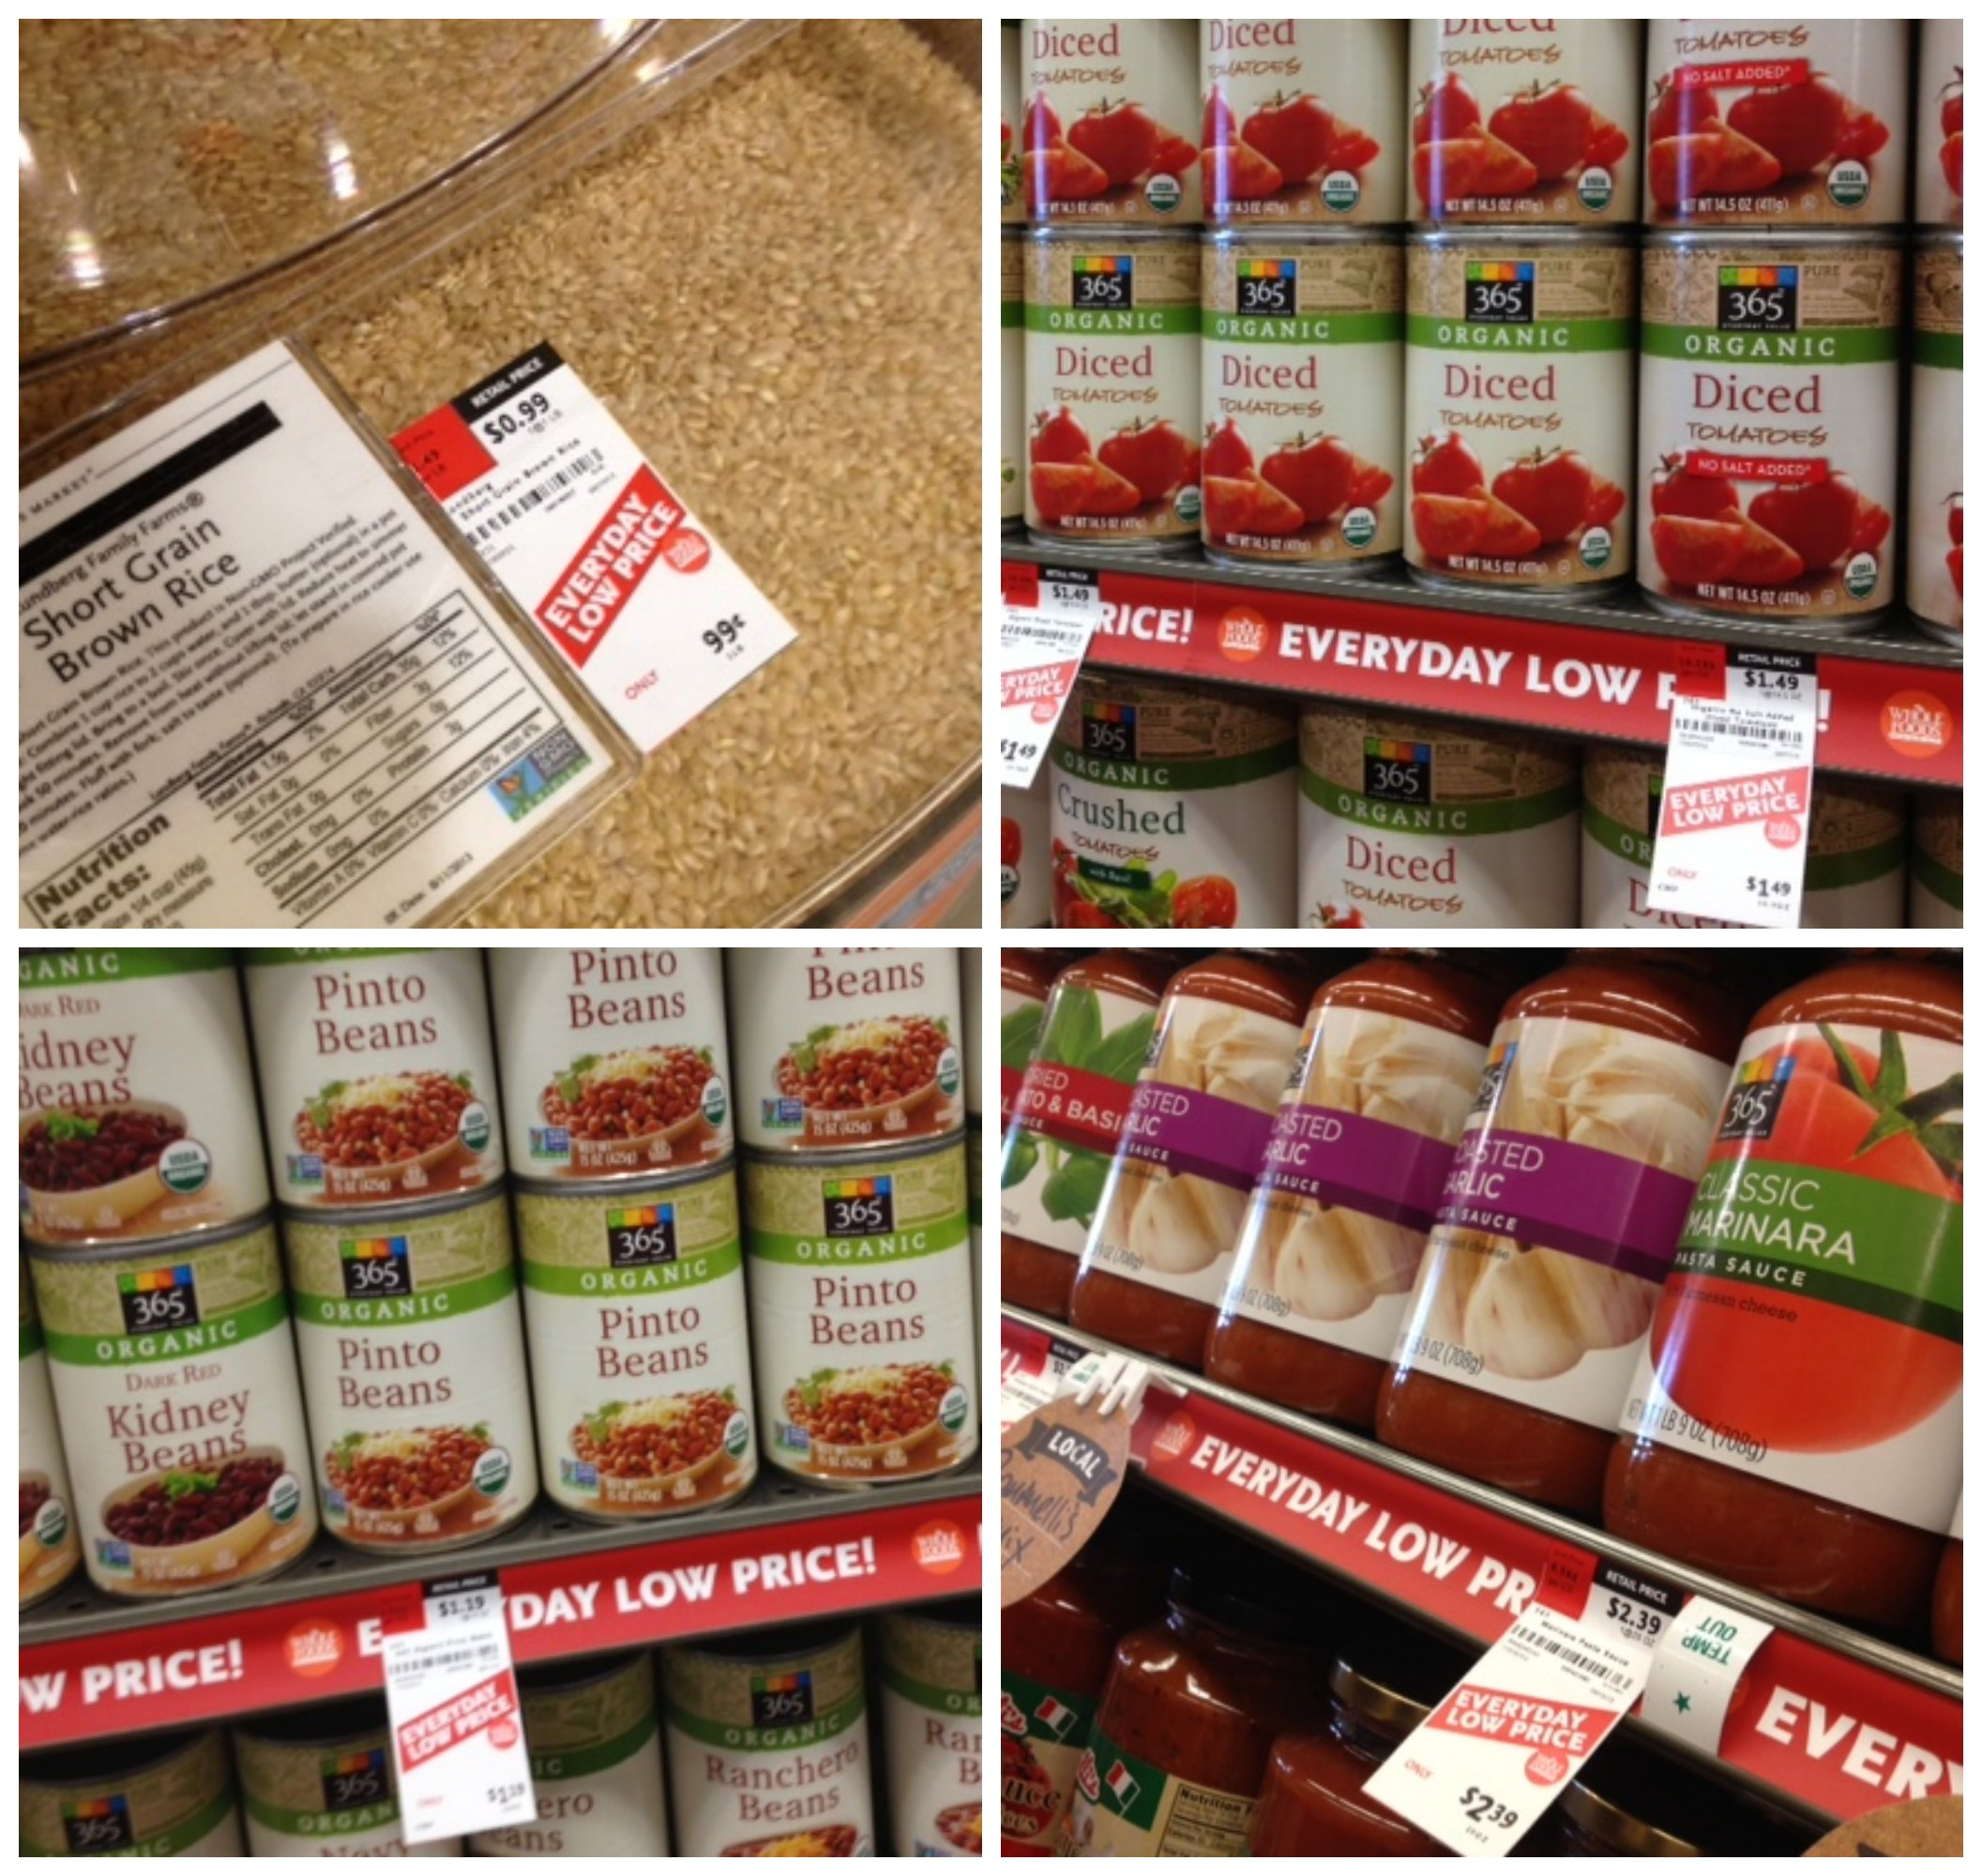 Whole Foods Prices On Vega Shakes On Sale